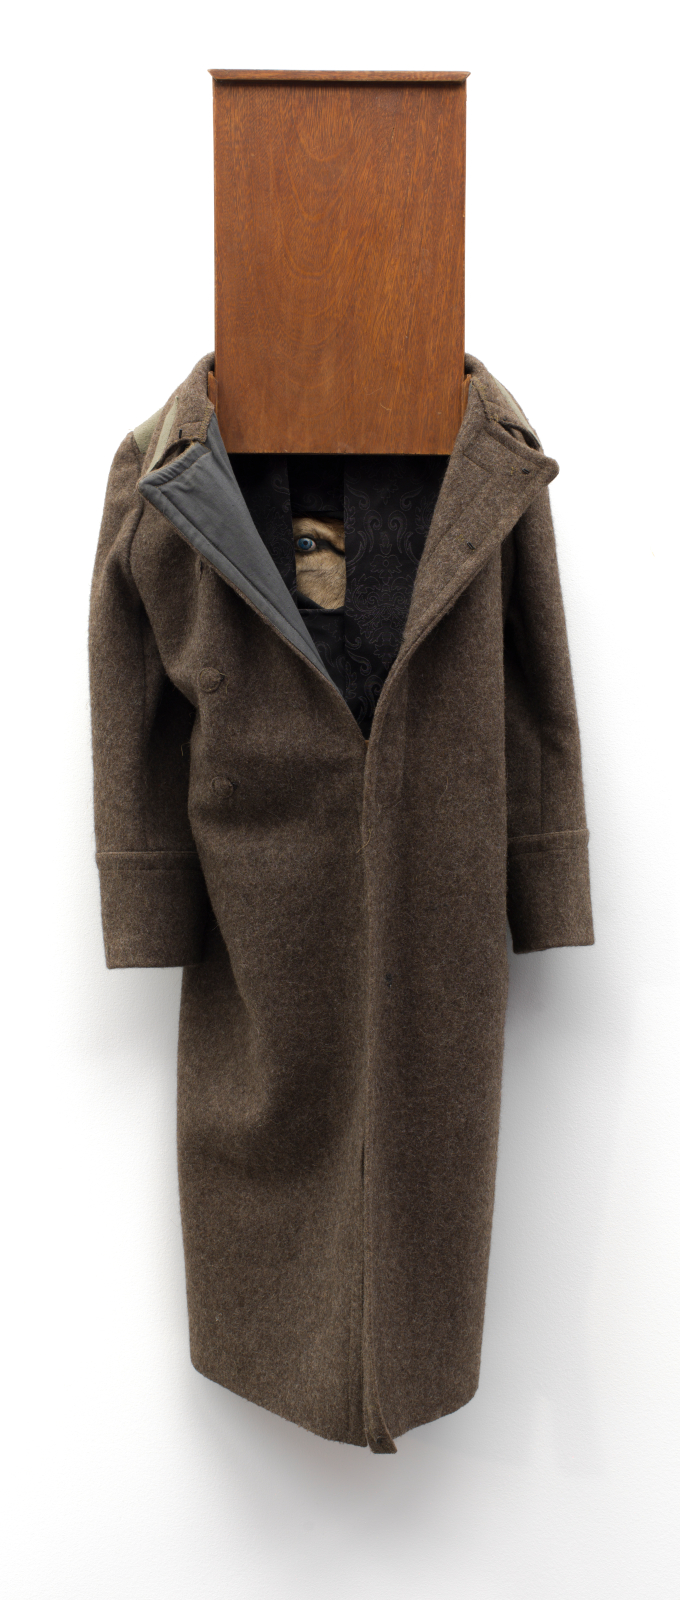 7dddf039b A long, brown wool trench coat is crowned by a panel of cherry wood in